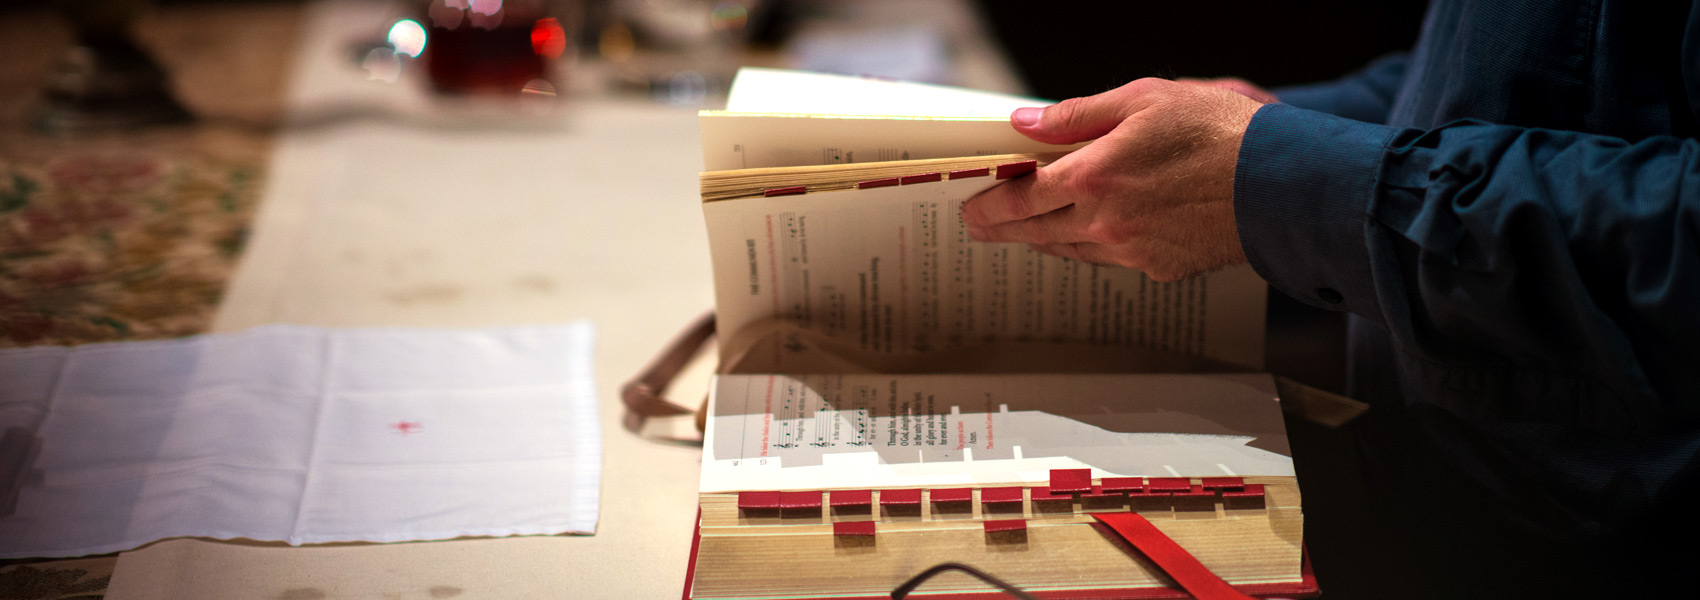 Close up of the pages of a hymn book being flipped by a priest's hands.